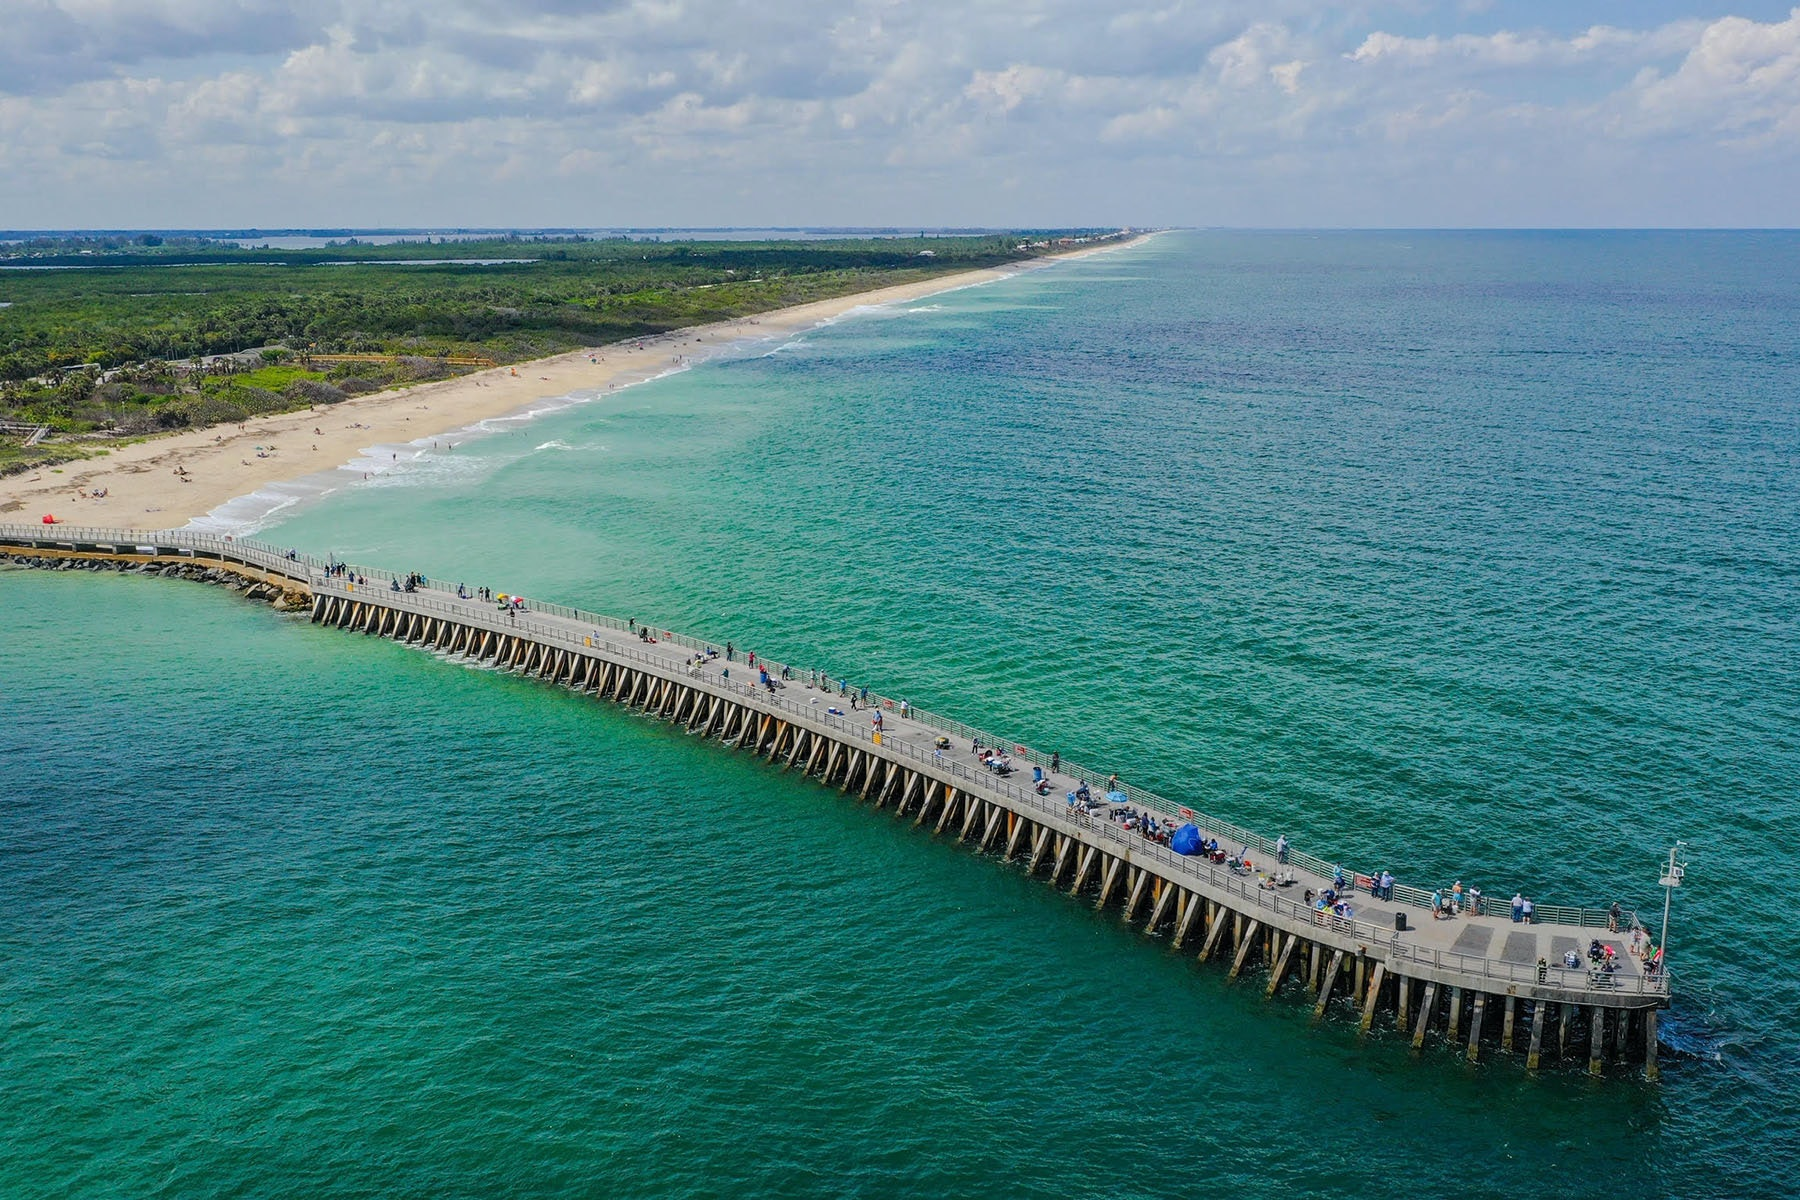 aerial view of jetty jutting out into the ocean